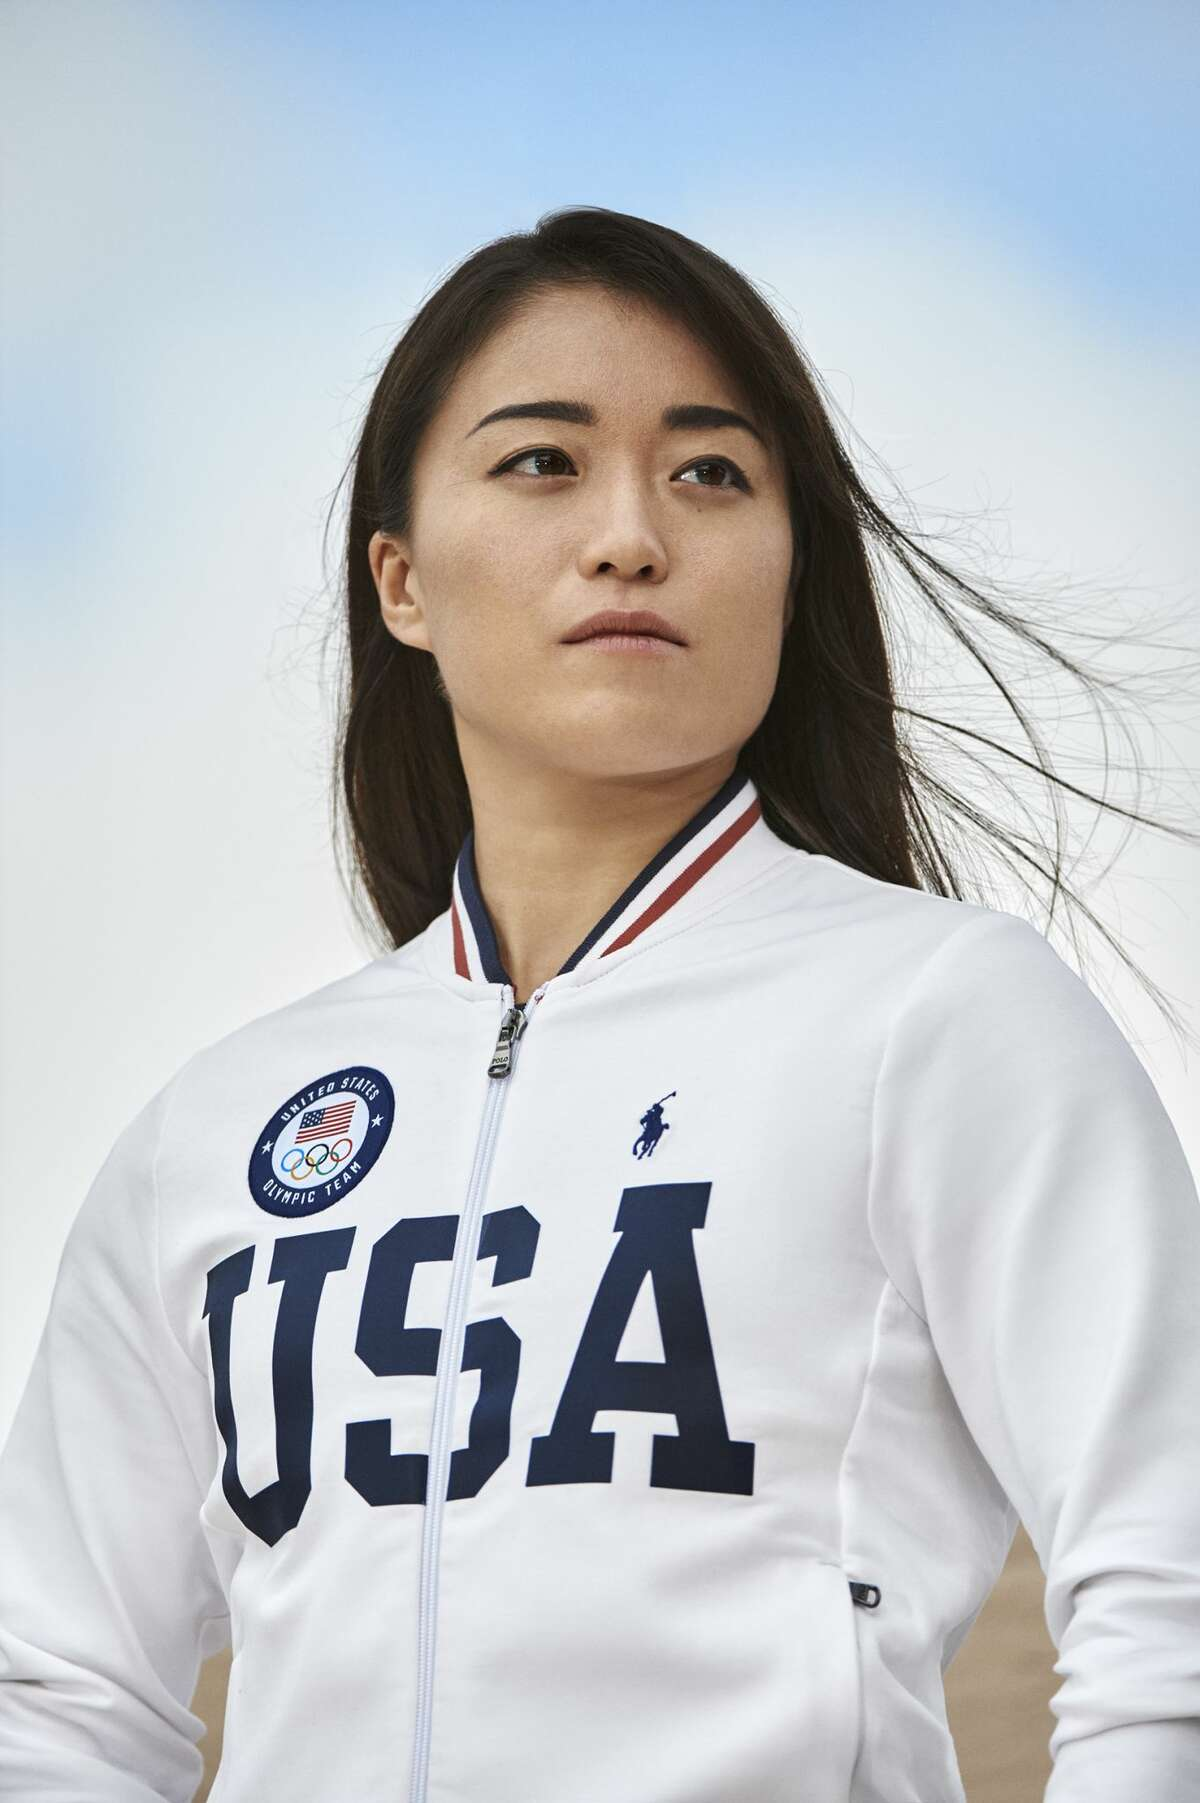 Polo Ralph Lauren is the official outfitter for Team USA at the 2021 Olympic Games in Tokyo. Lauren lives just across the Connecticut state line in Bedford, NY.